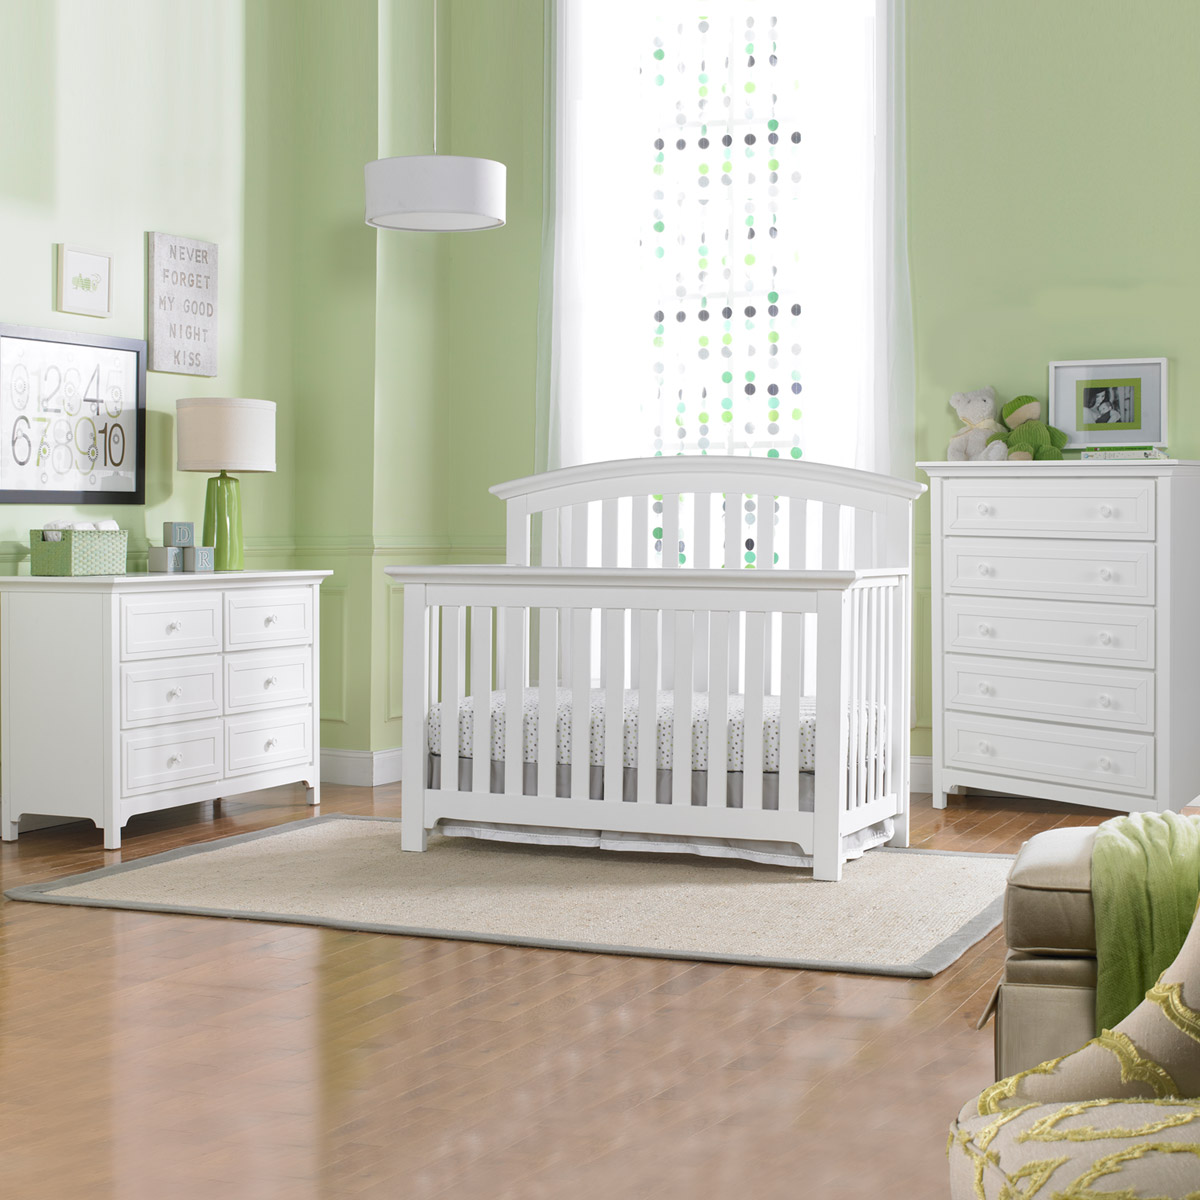 Ti Amo Baci 3 Piece Nursery Set Convertible Crib Double Dresser And 5 Drawer In Snow White